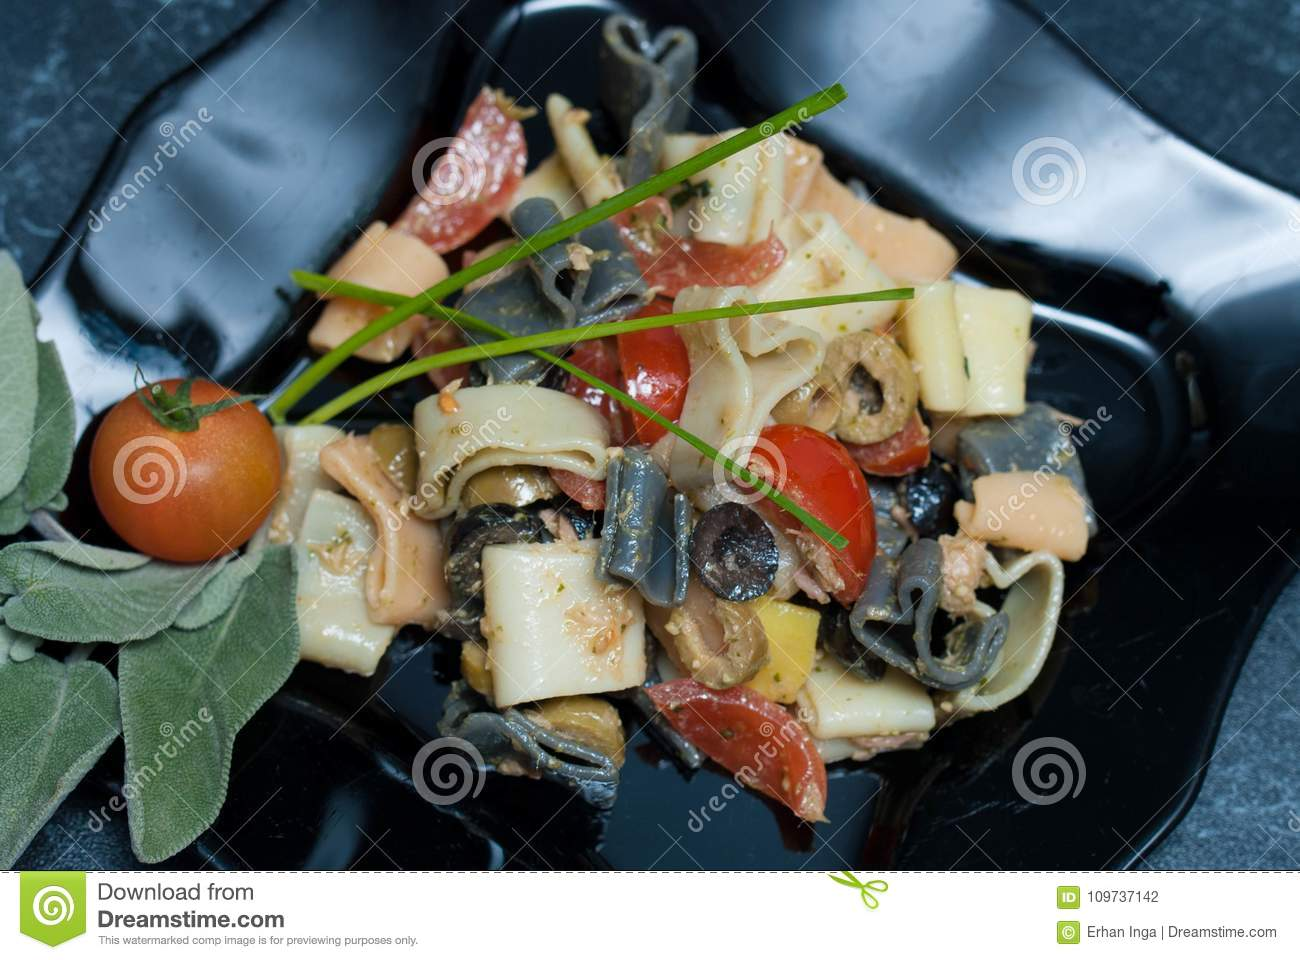 Colorful Pasta Heart-Shaped with Sauce, olivevs, Tomatoes in Black Plate. Top view. food.